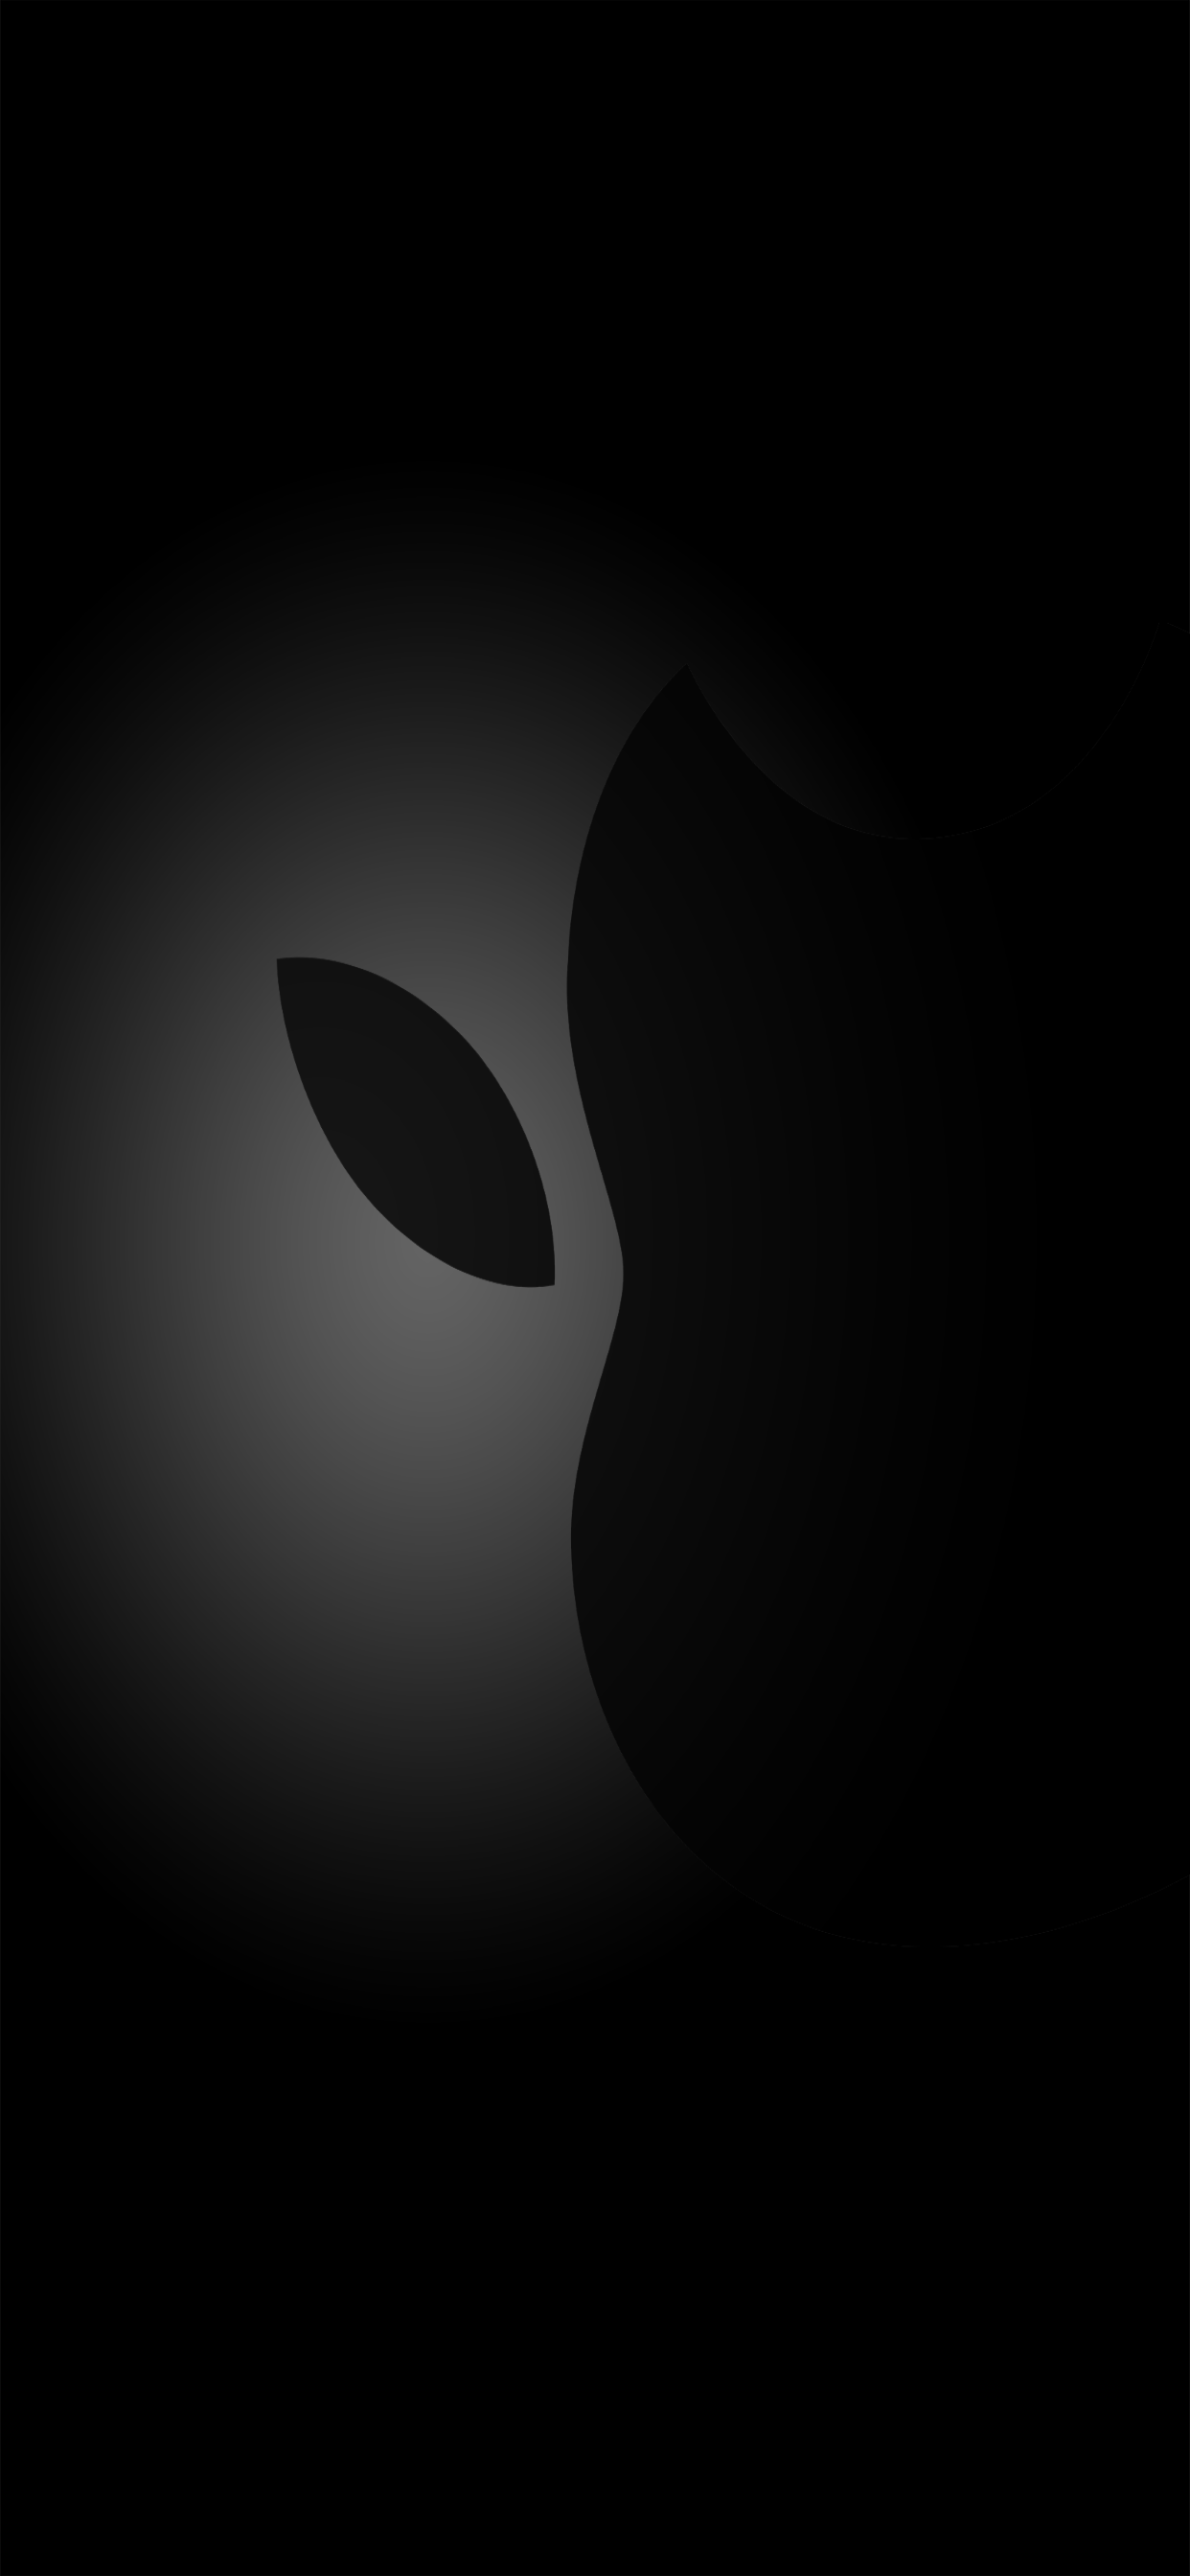 iPhone wallpaper apple event march 2019 v3 1 Apples March 25th event